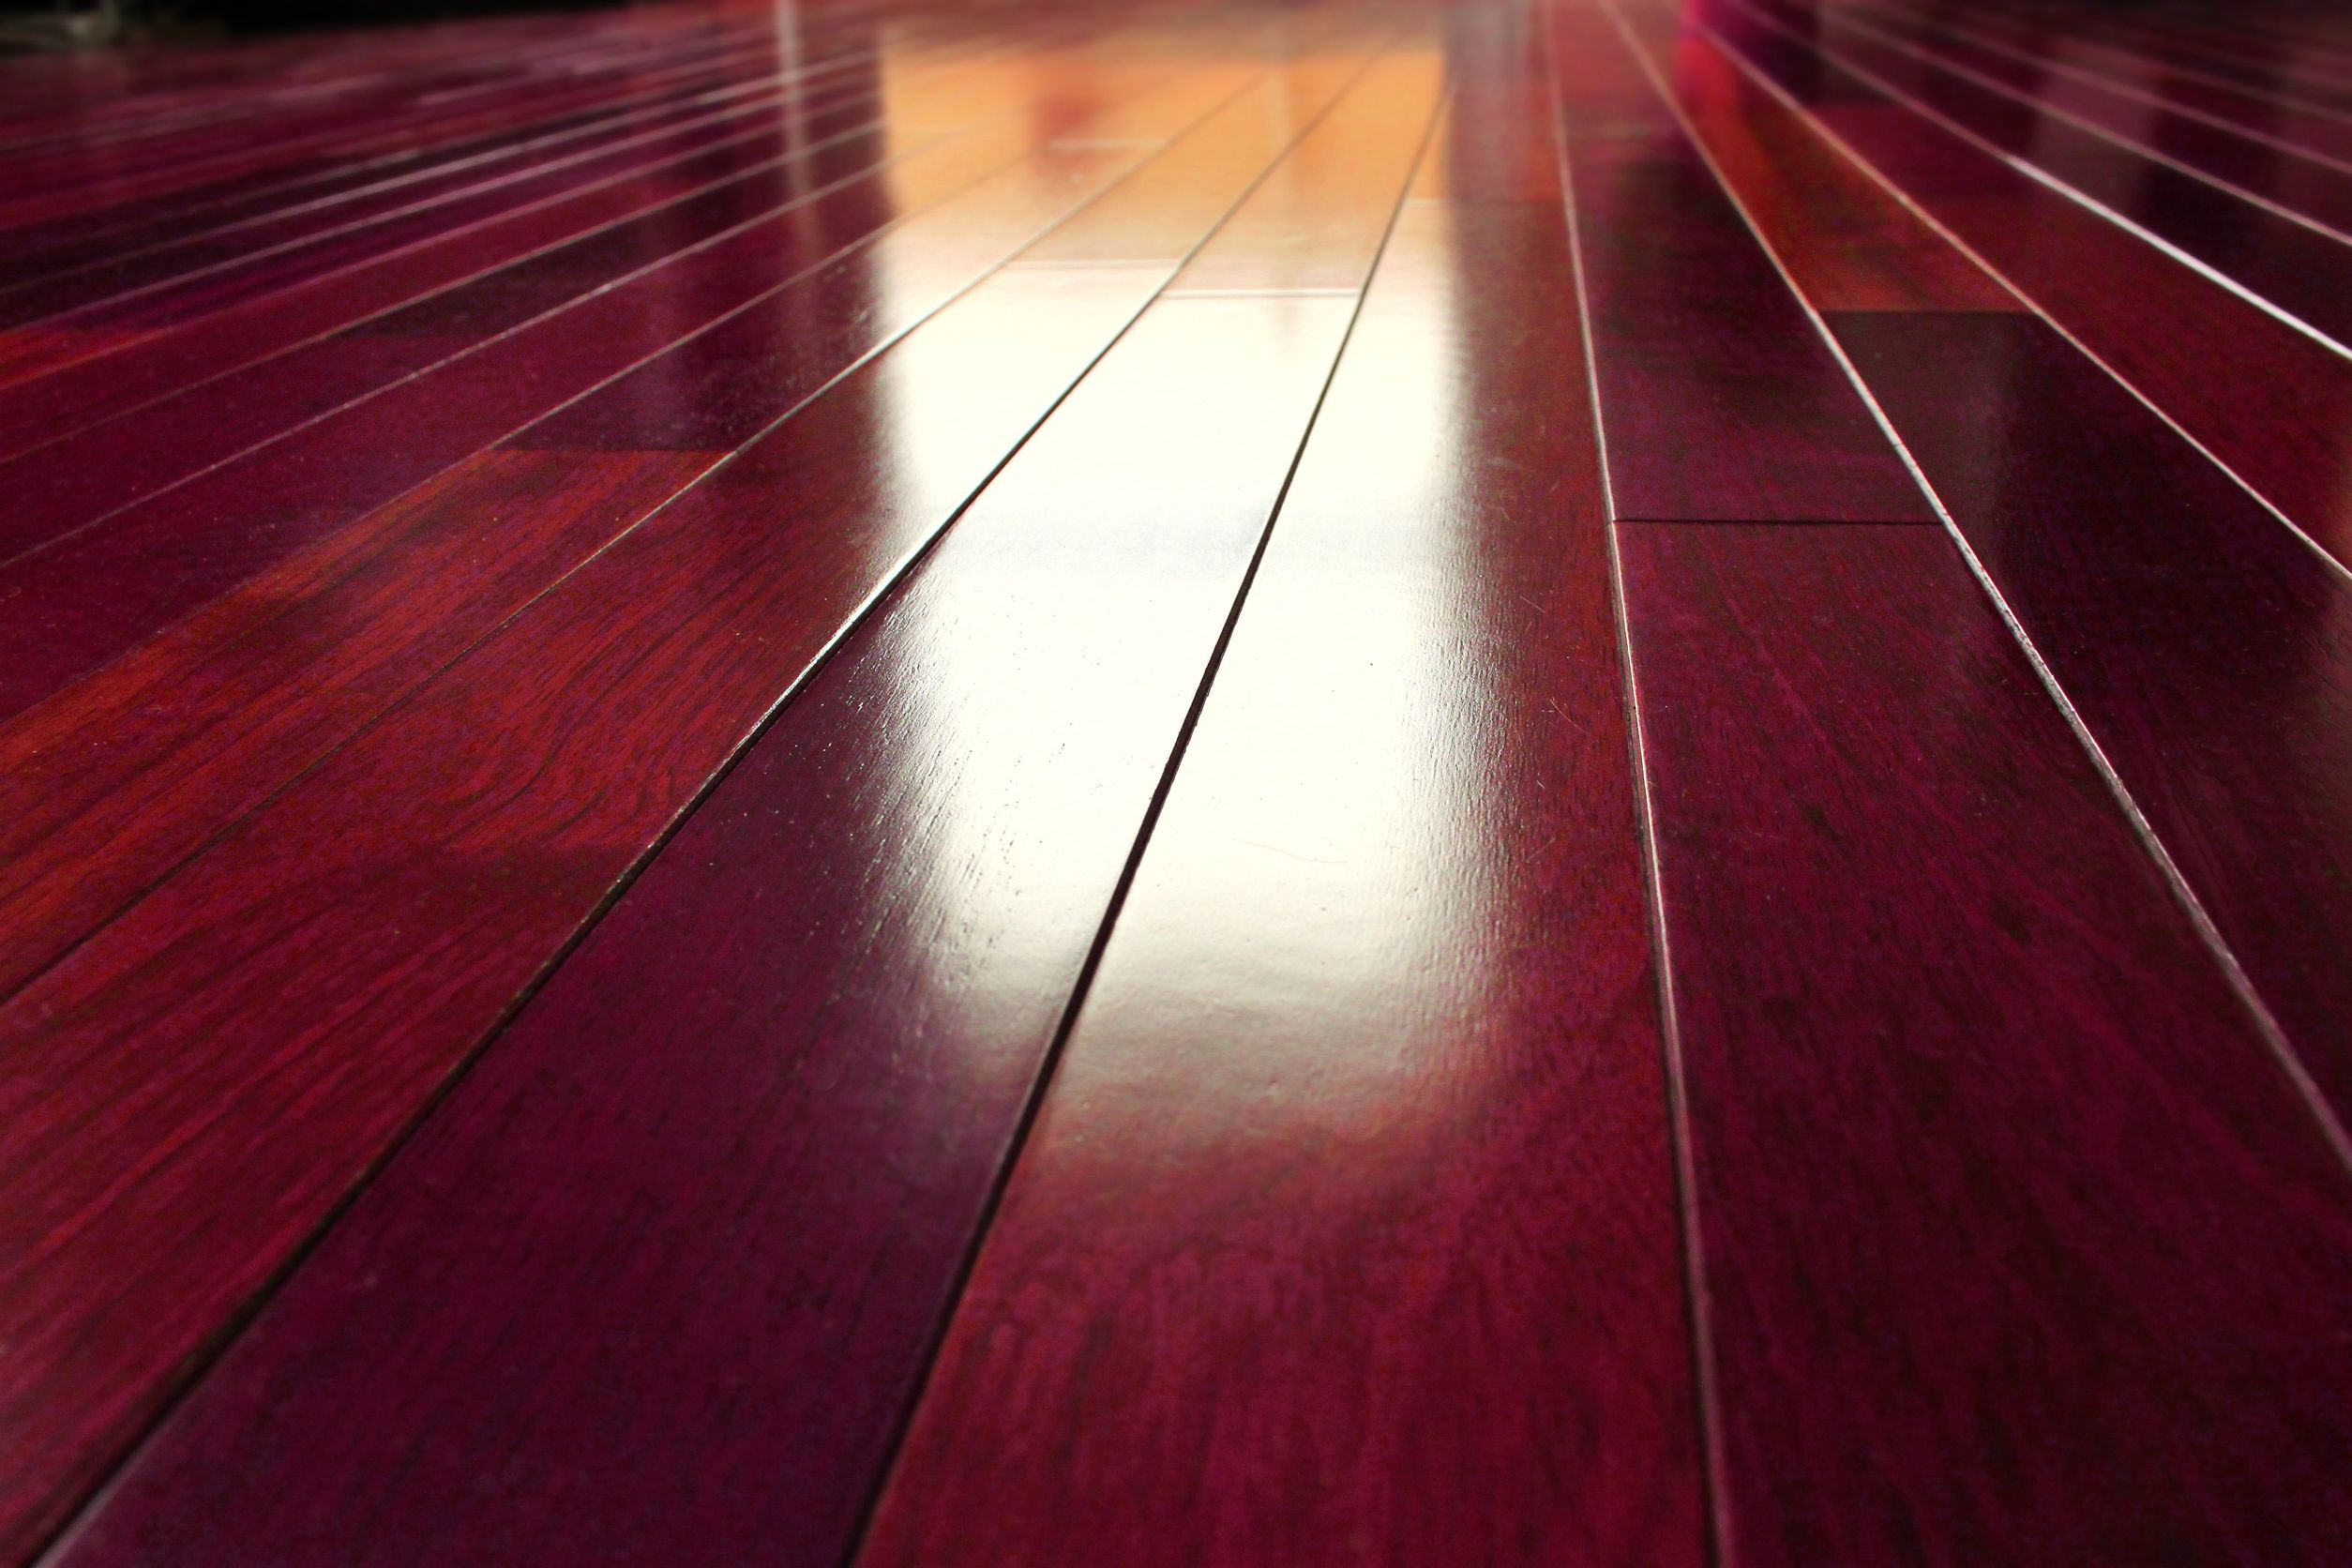 Brazilian cherry wood flooring it can help protect the value of your home HVIFWKY